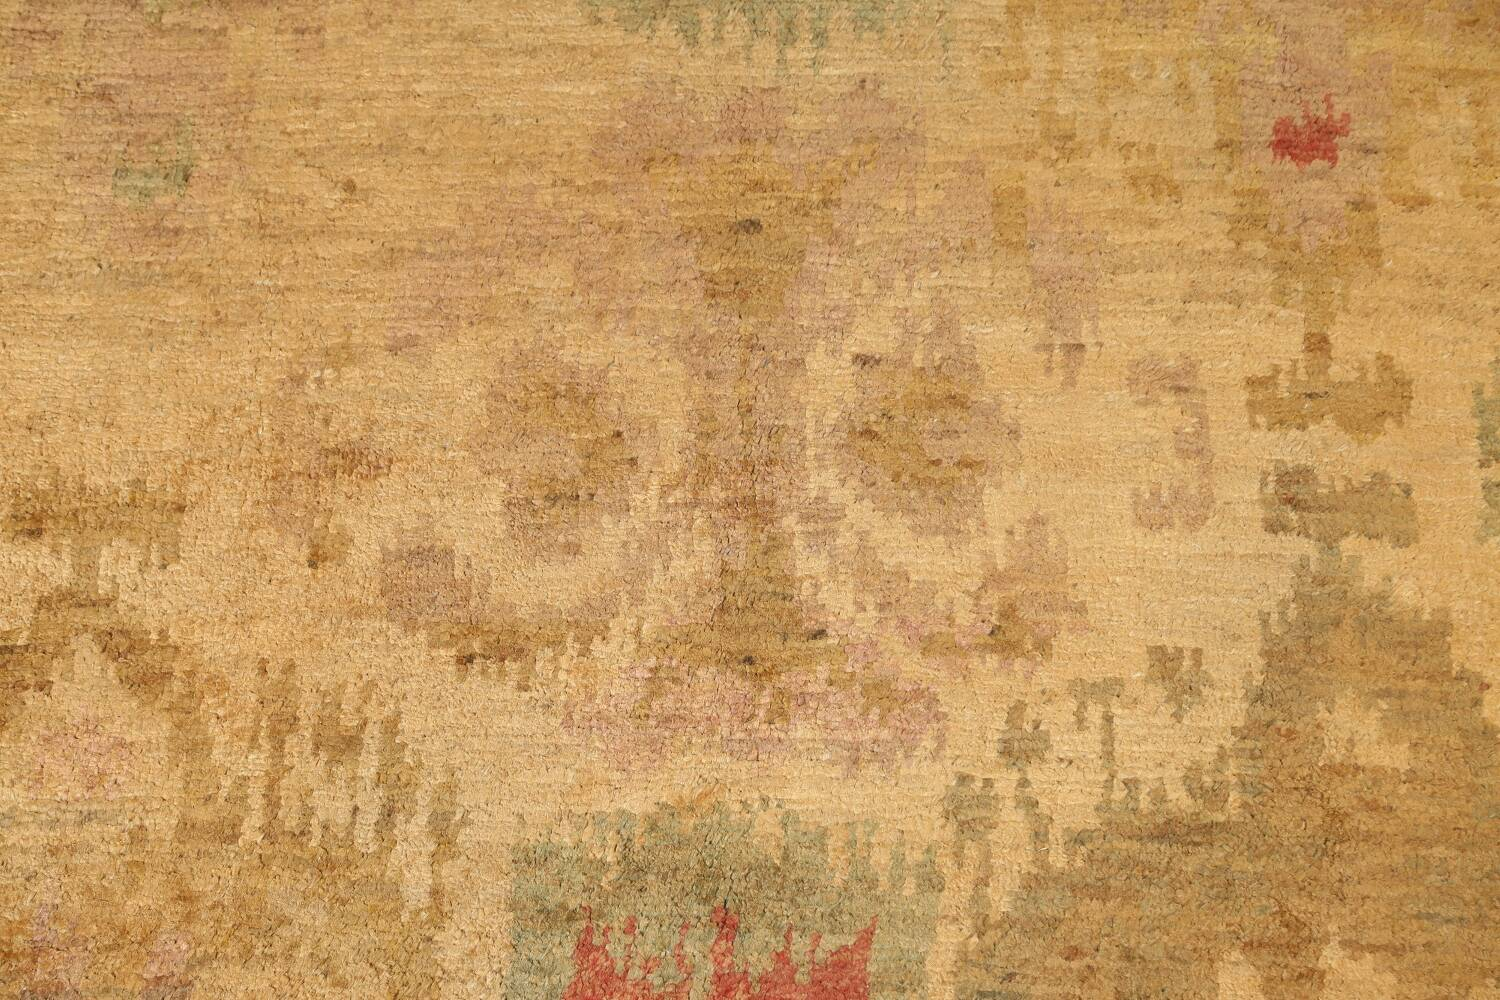 Abstract Oriental Area Rug 6x8 image 4